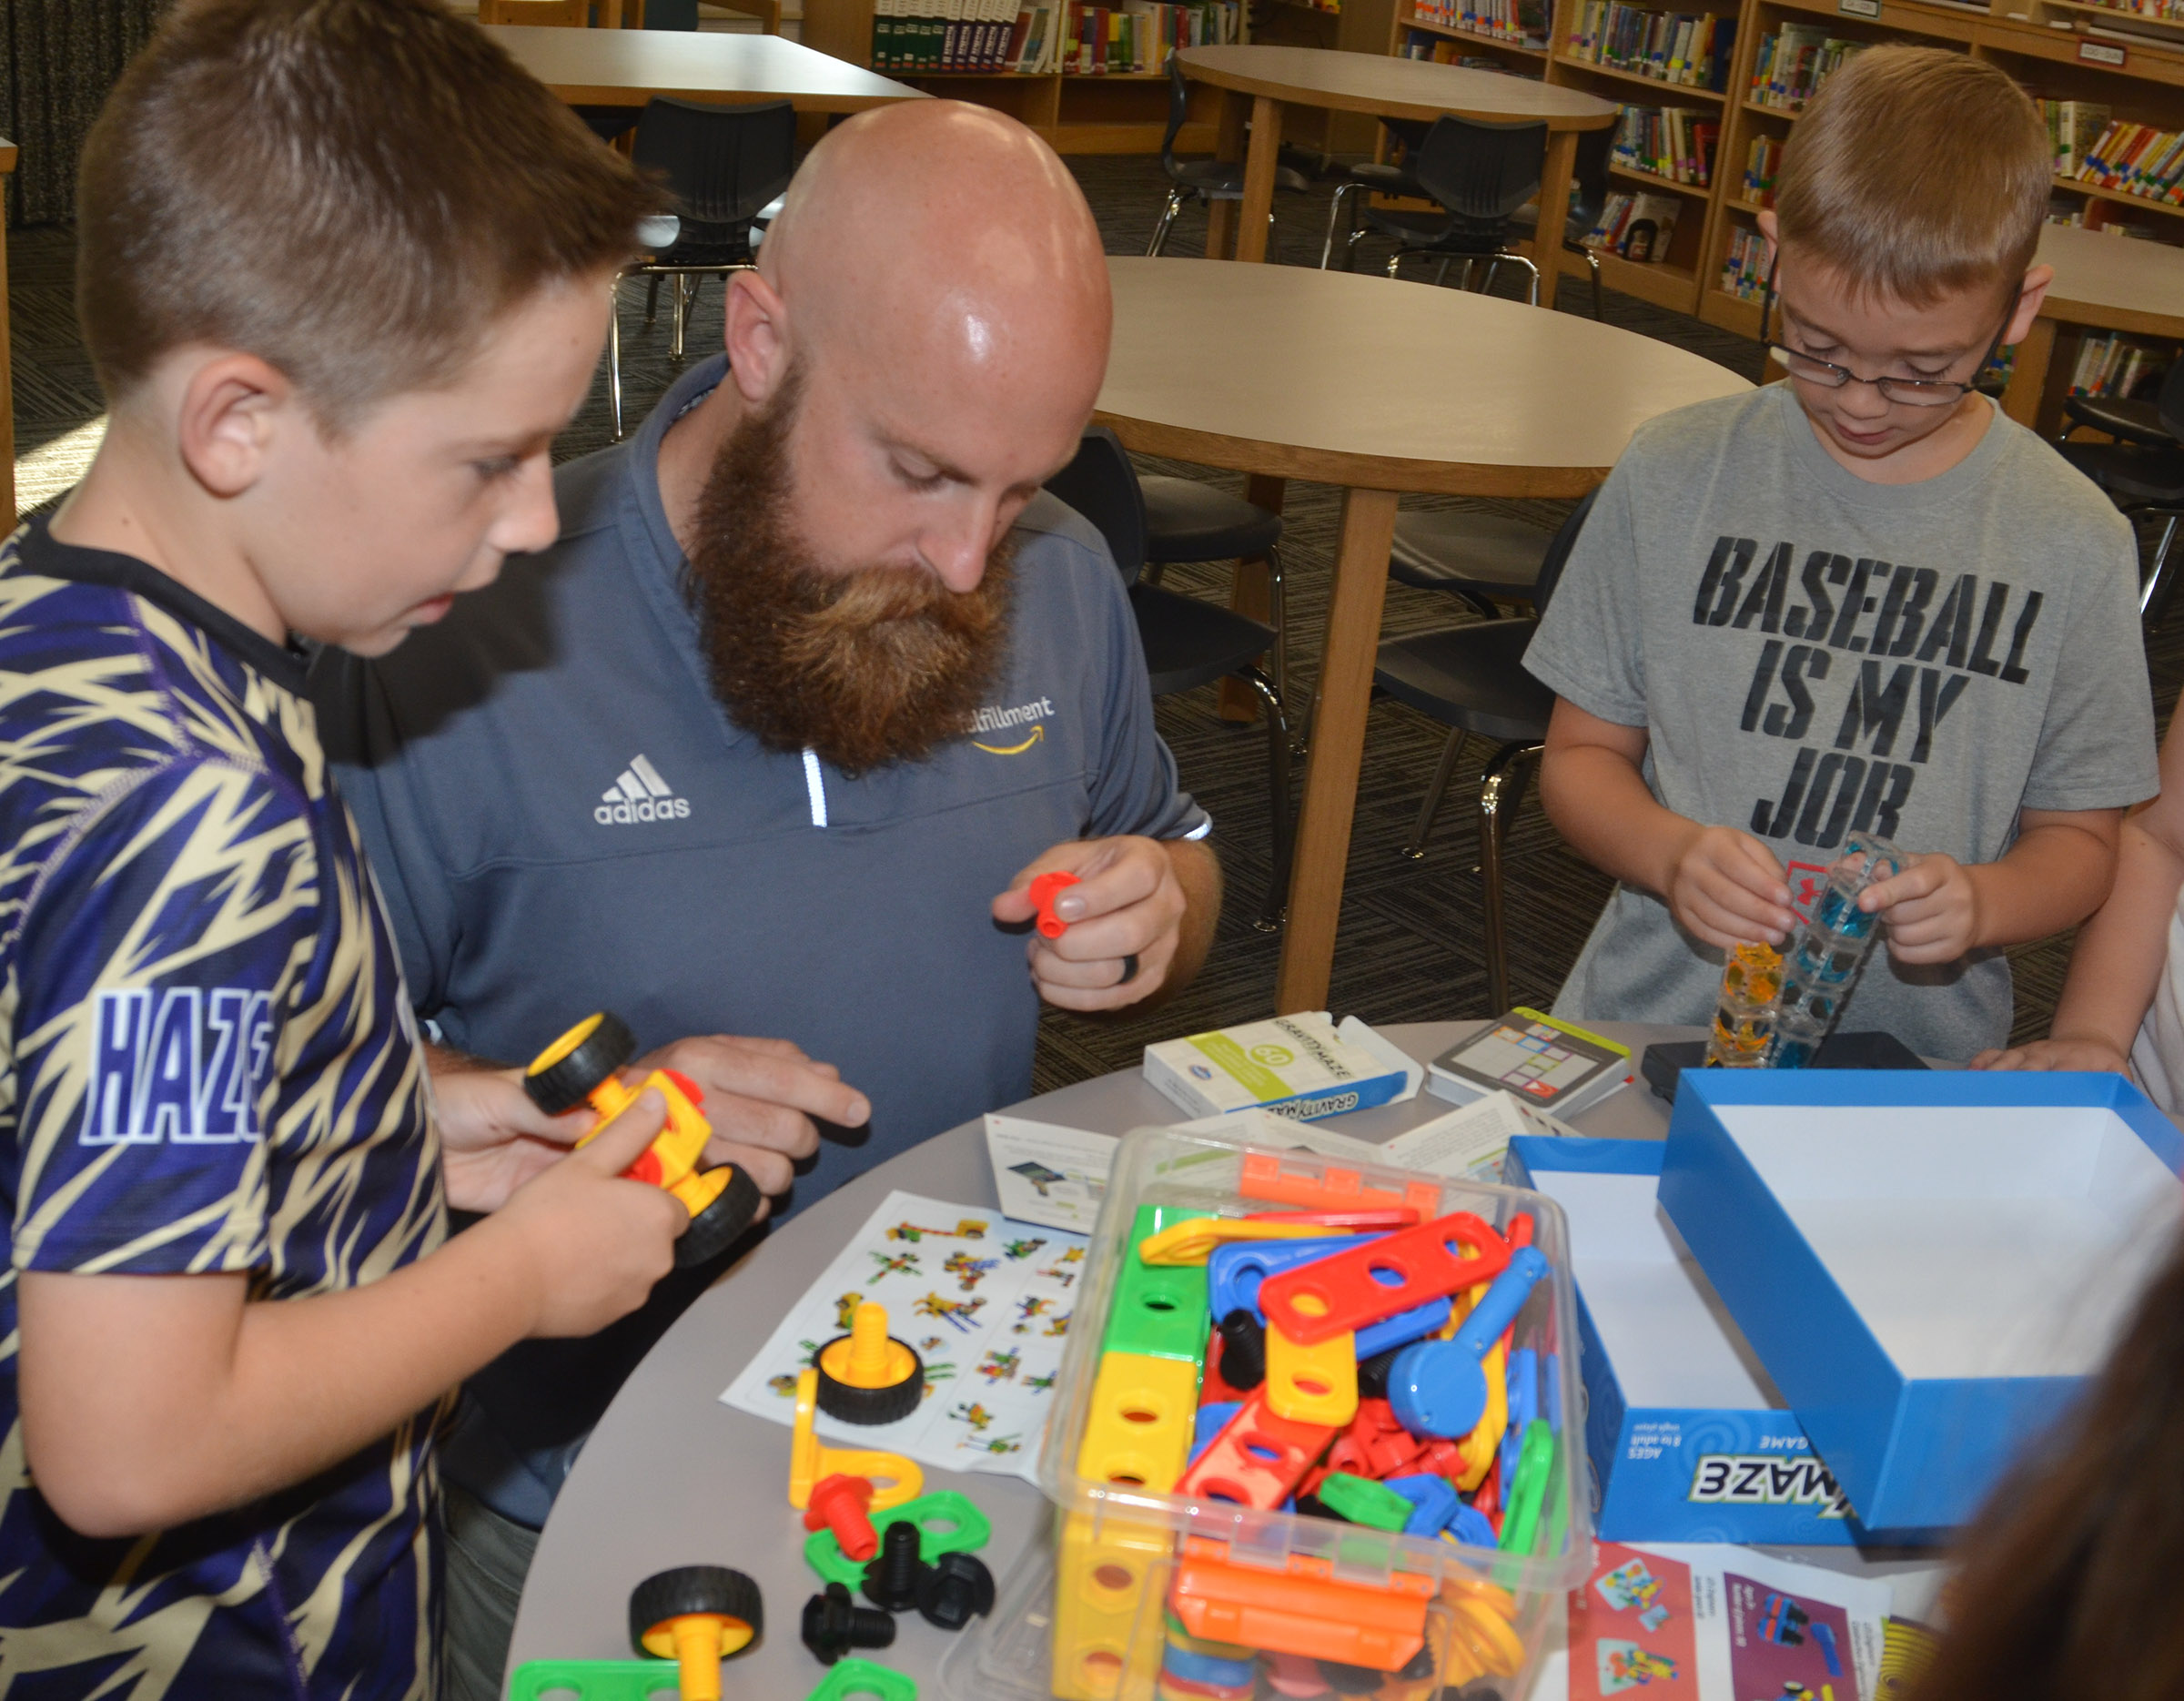 Chad Forsyth, an operations manager at Amazon, plays with STEM toys with third-grader Lanigan Price, at left, and fourth-grader Cameron Estes.